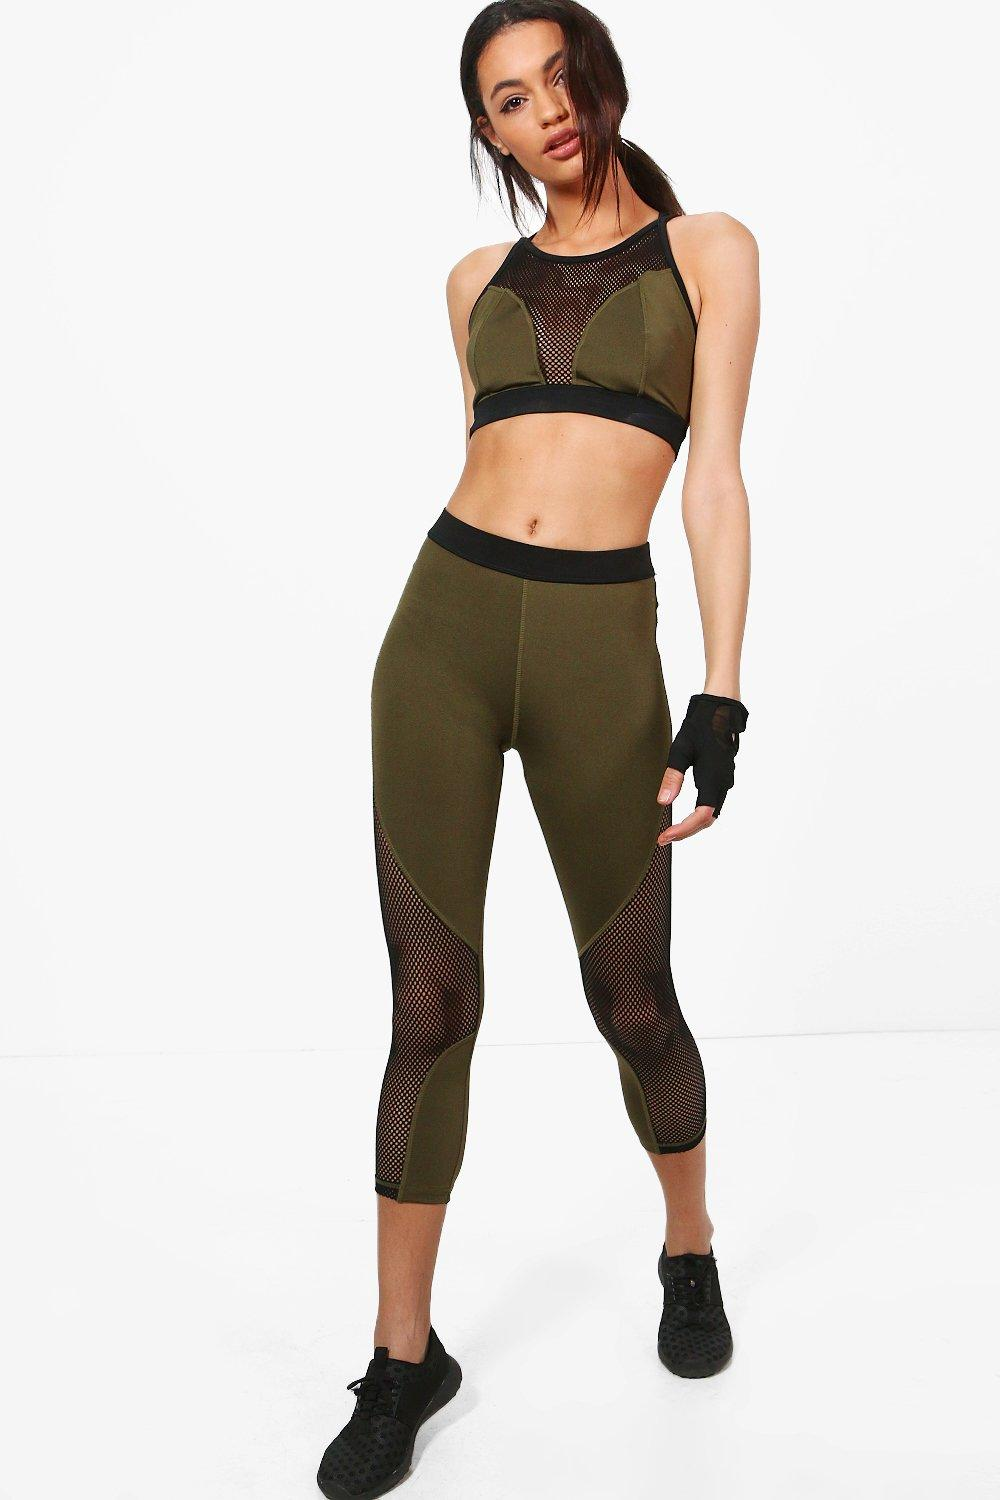 Lilly Fit Mesh Panel Capri Running Leggings